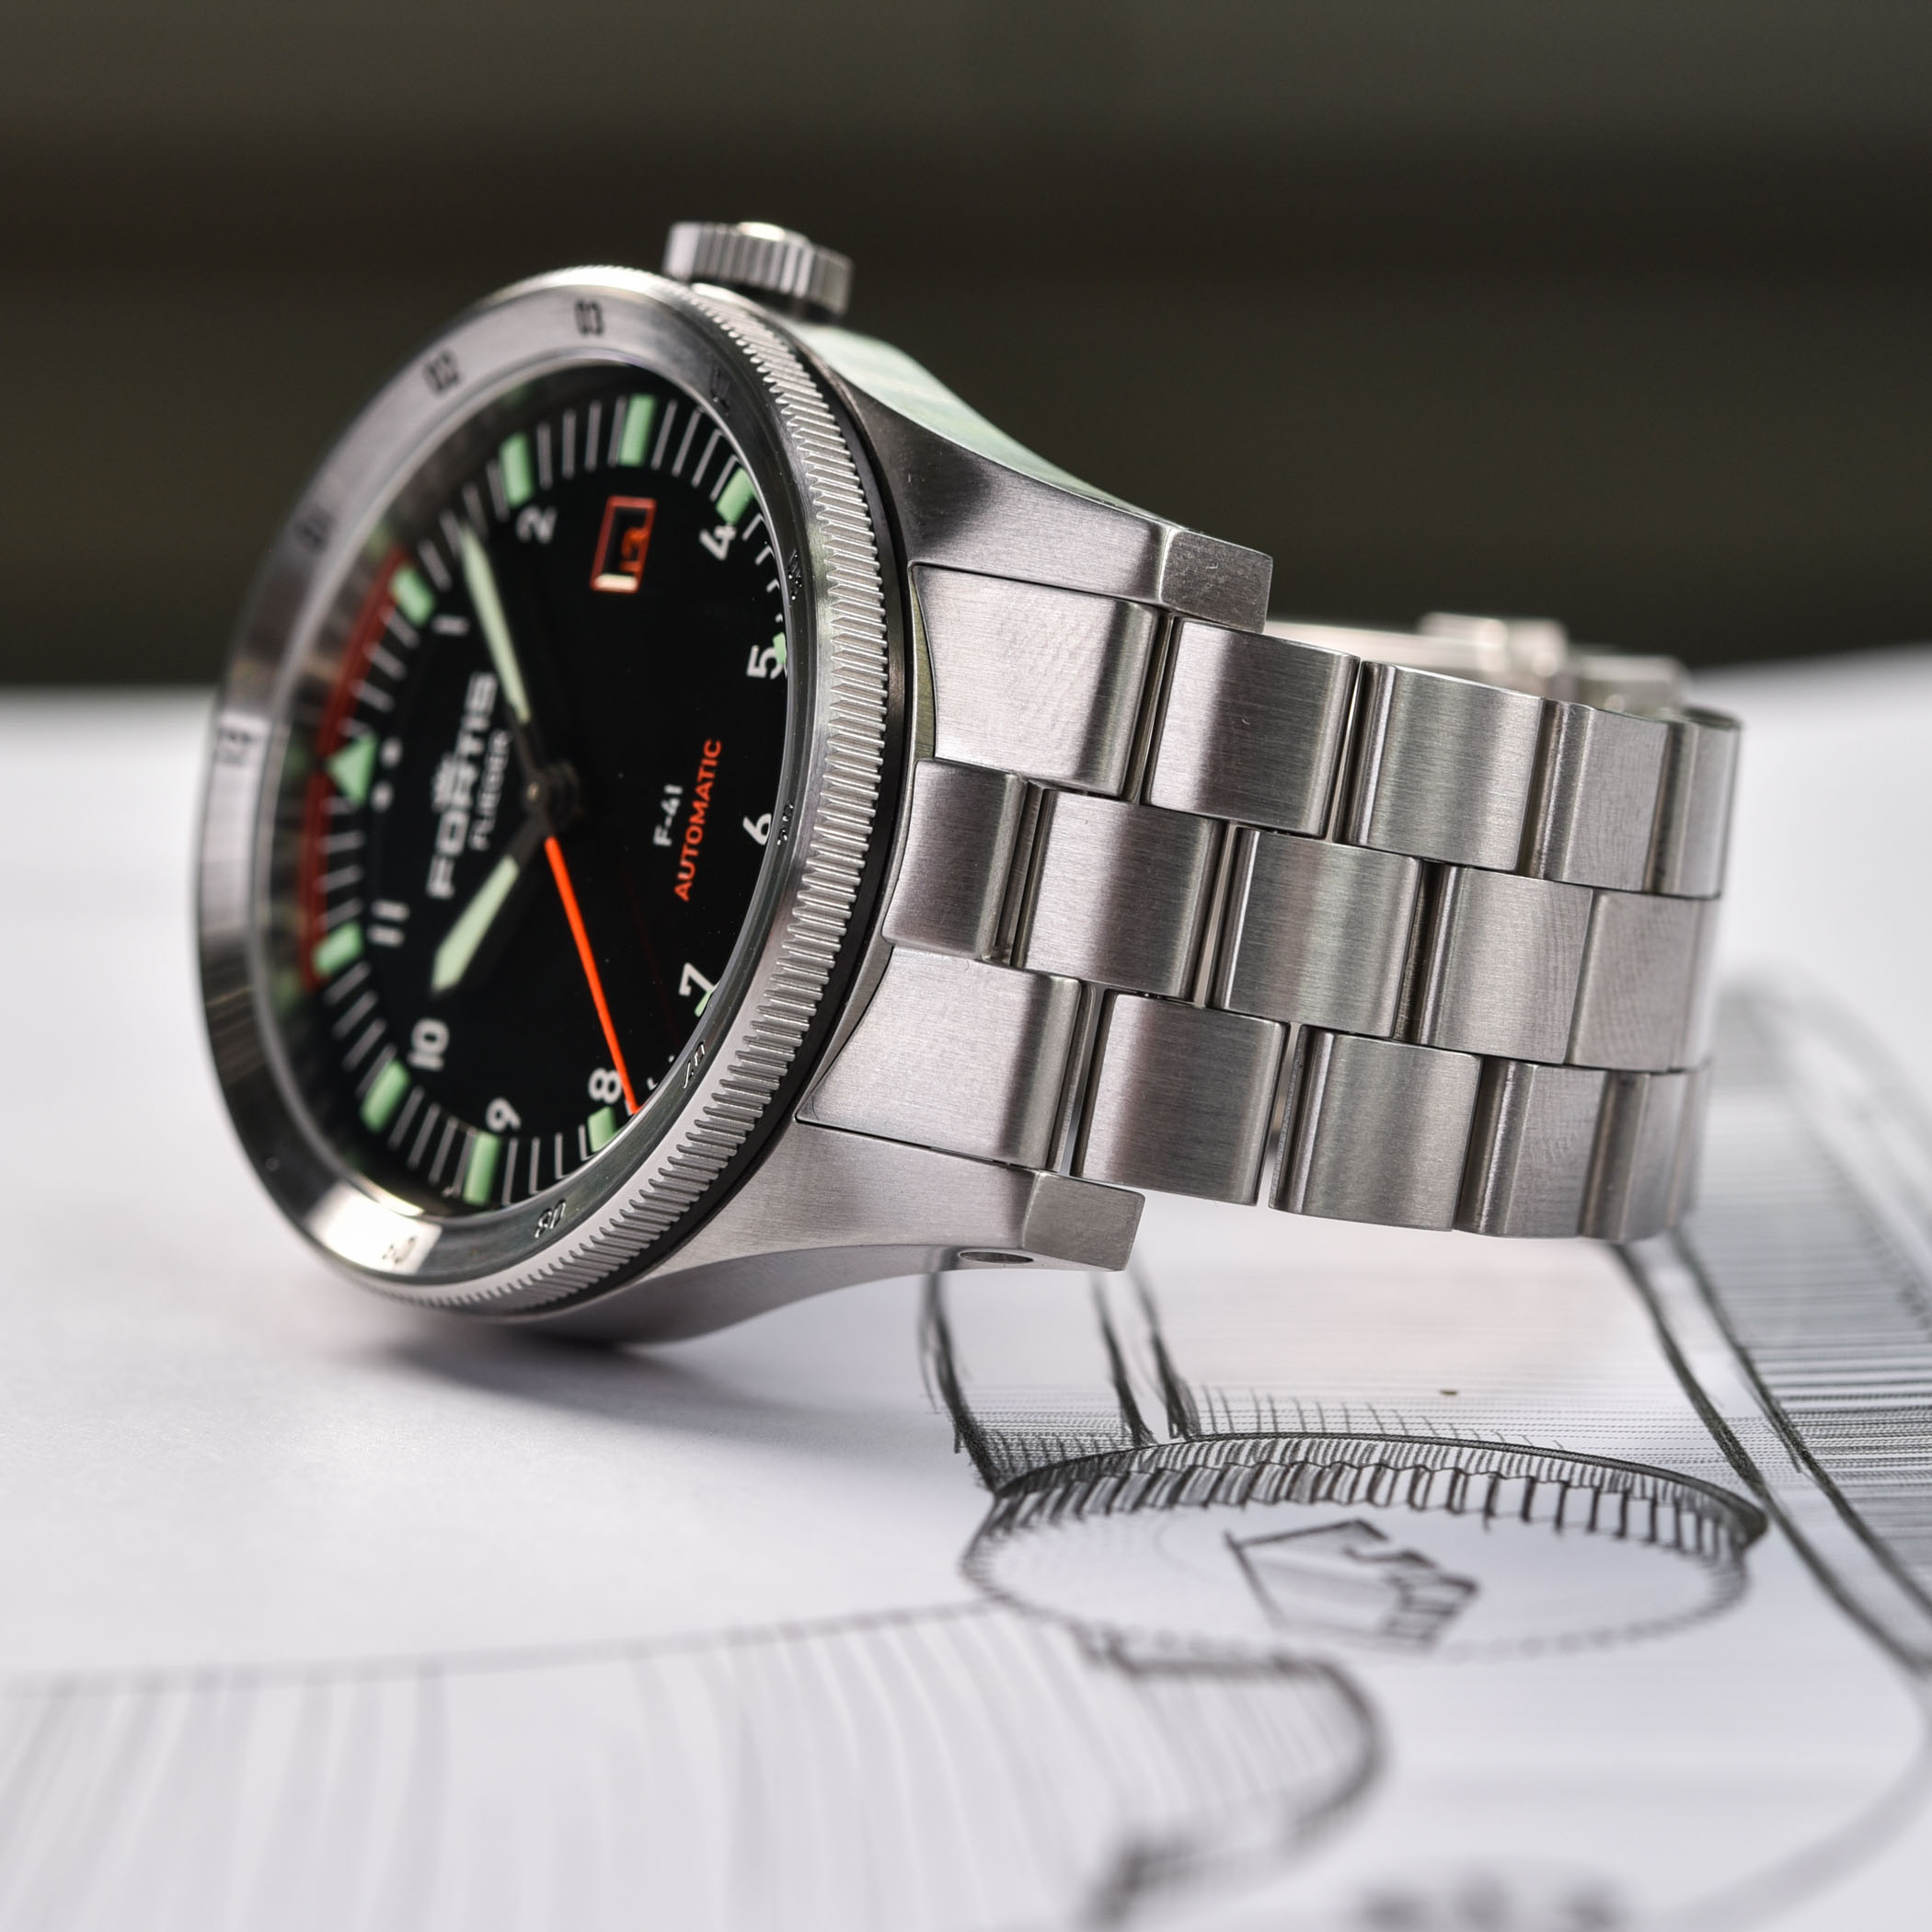 Fortis Flieger F-41 Automatic - Fortis Flieger F-39 Automatic - 6